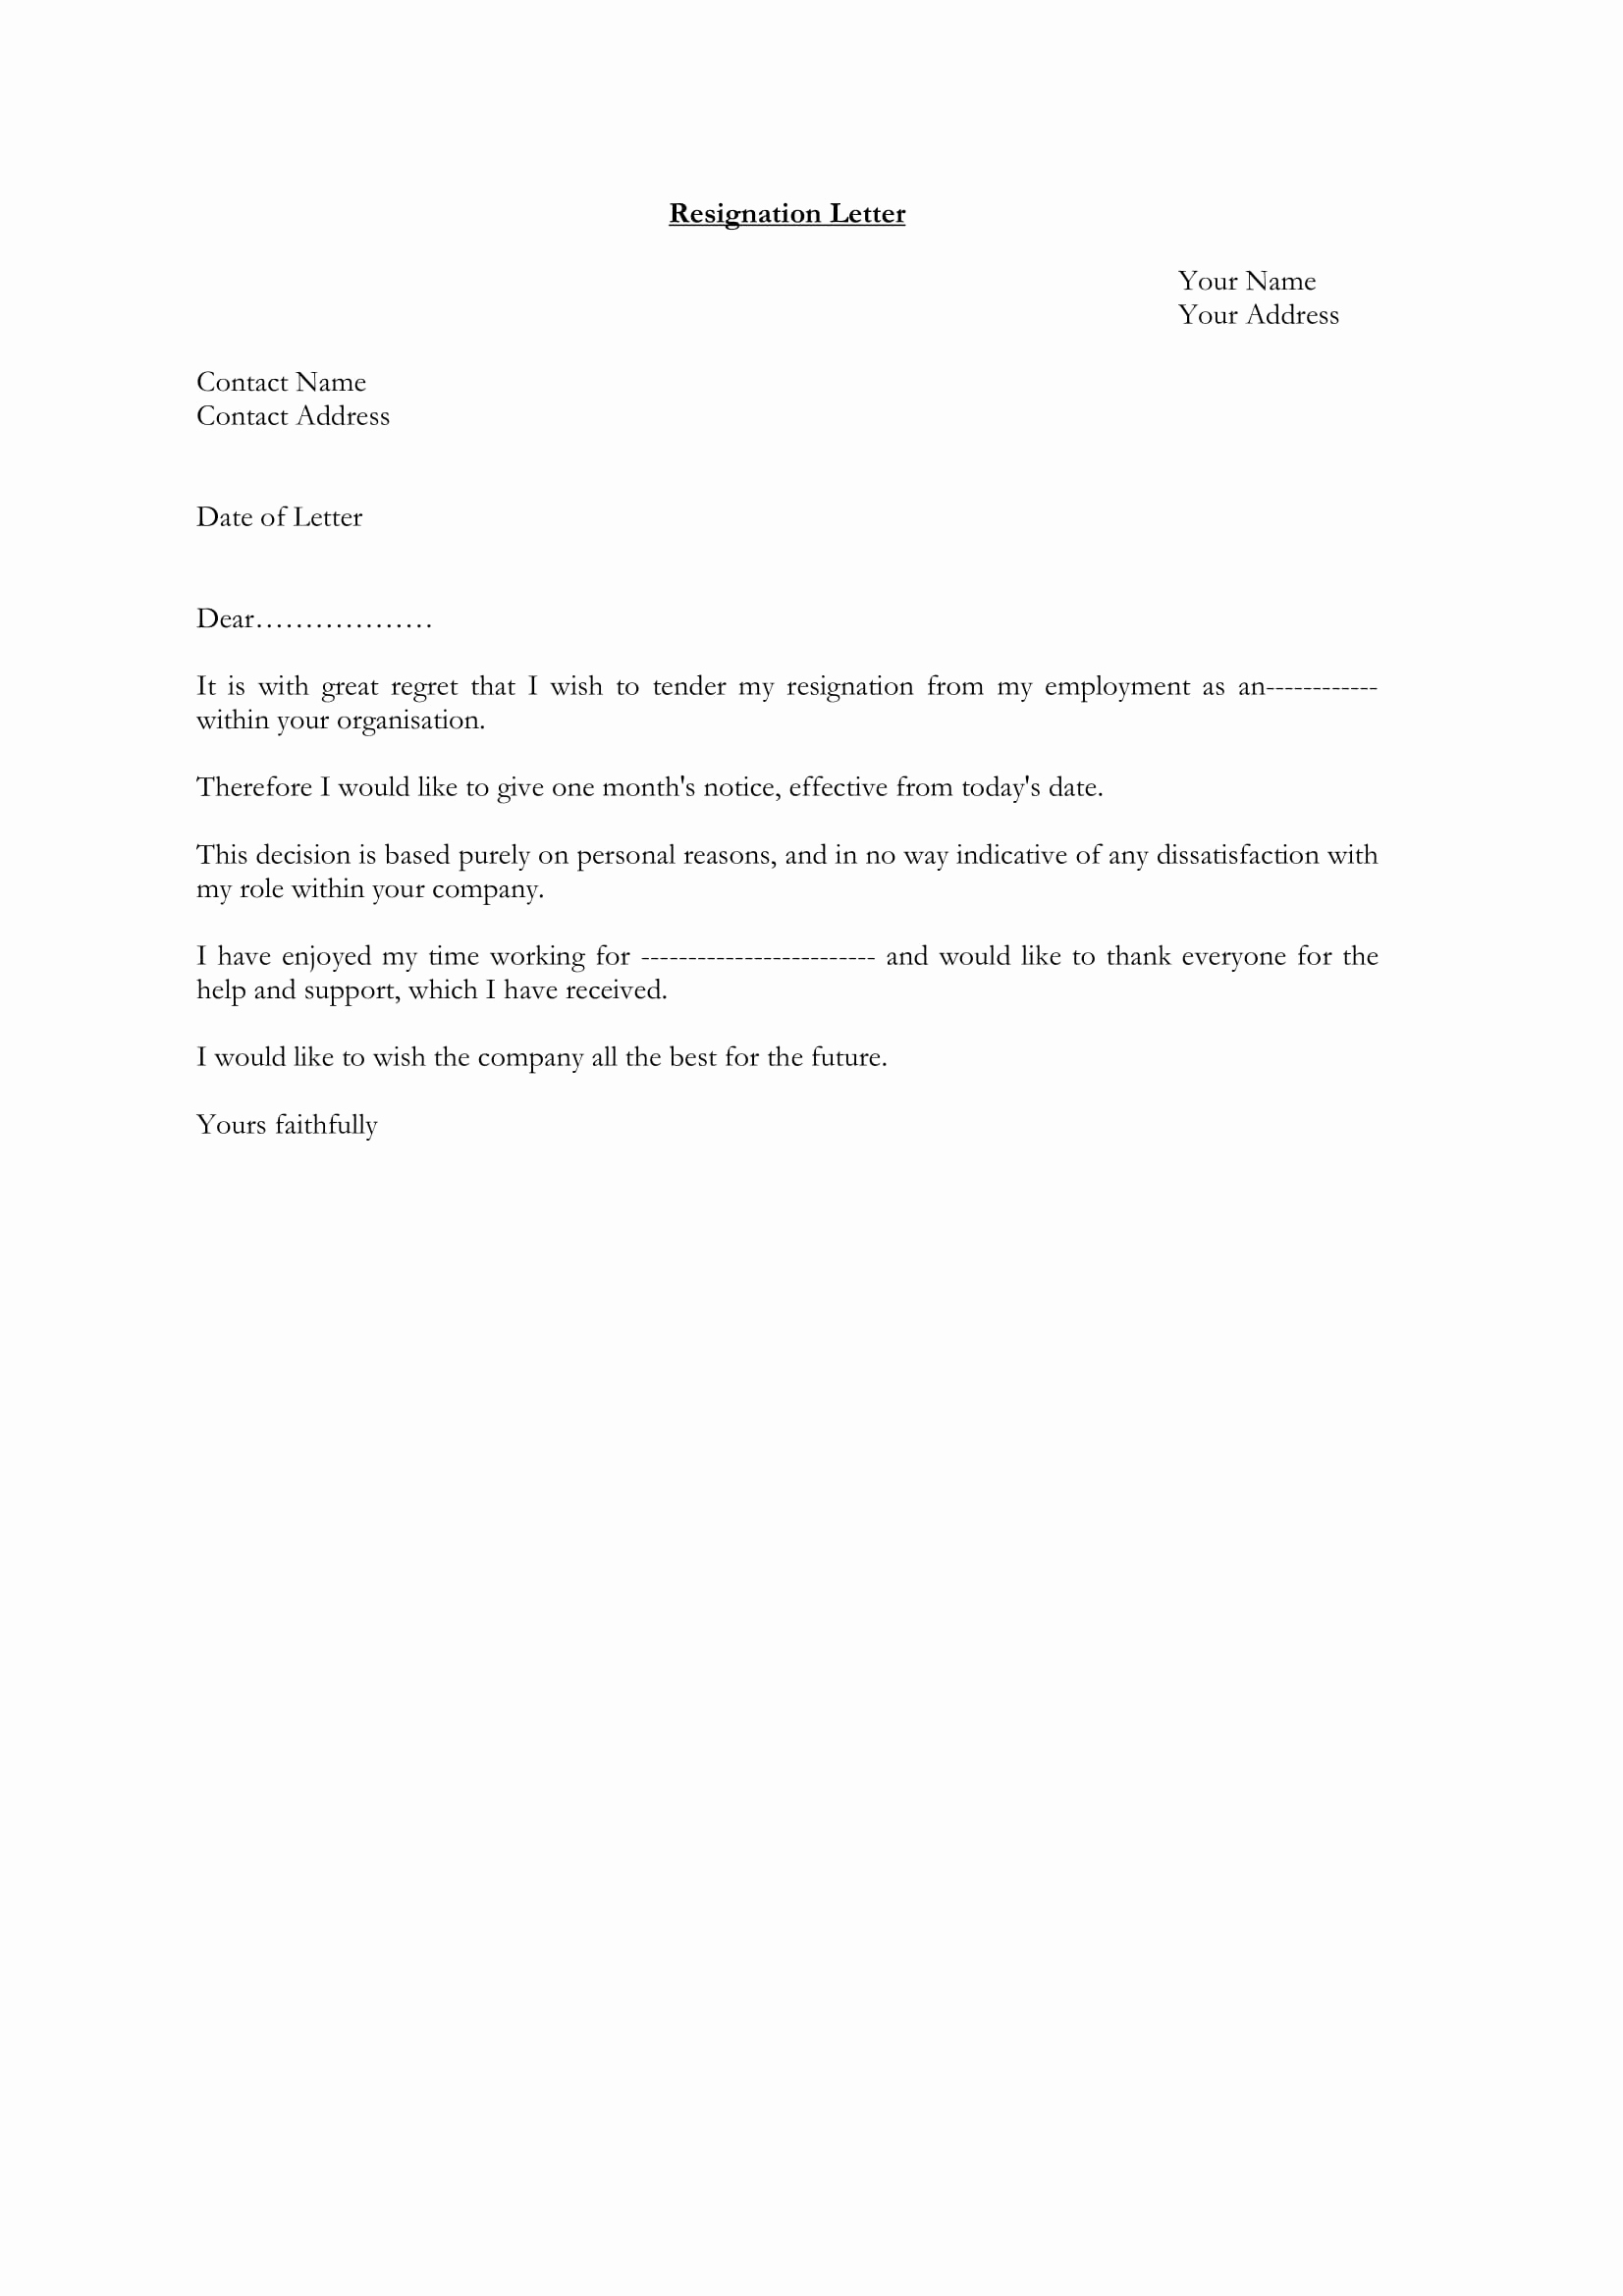 Letter Of Resignation Template Free Beautiful 25 Simple Resignation Letter Examples Pdf Word